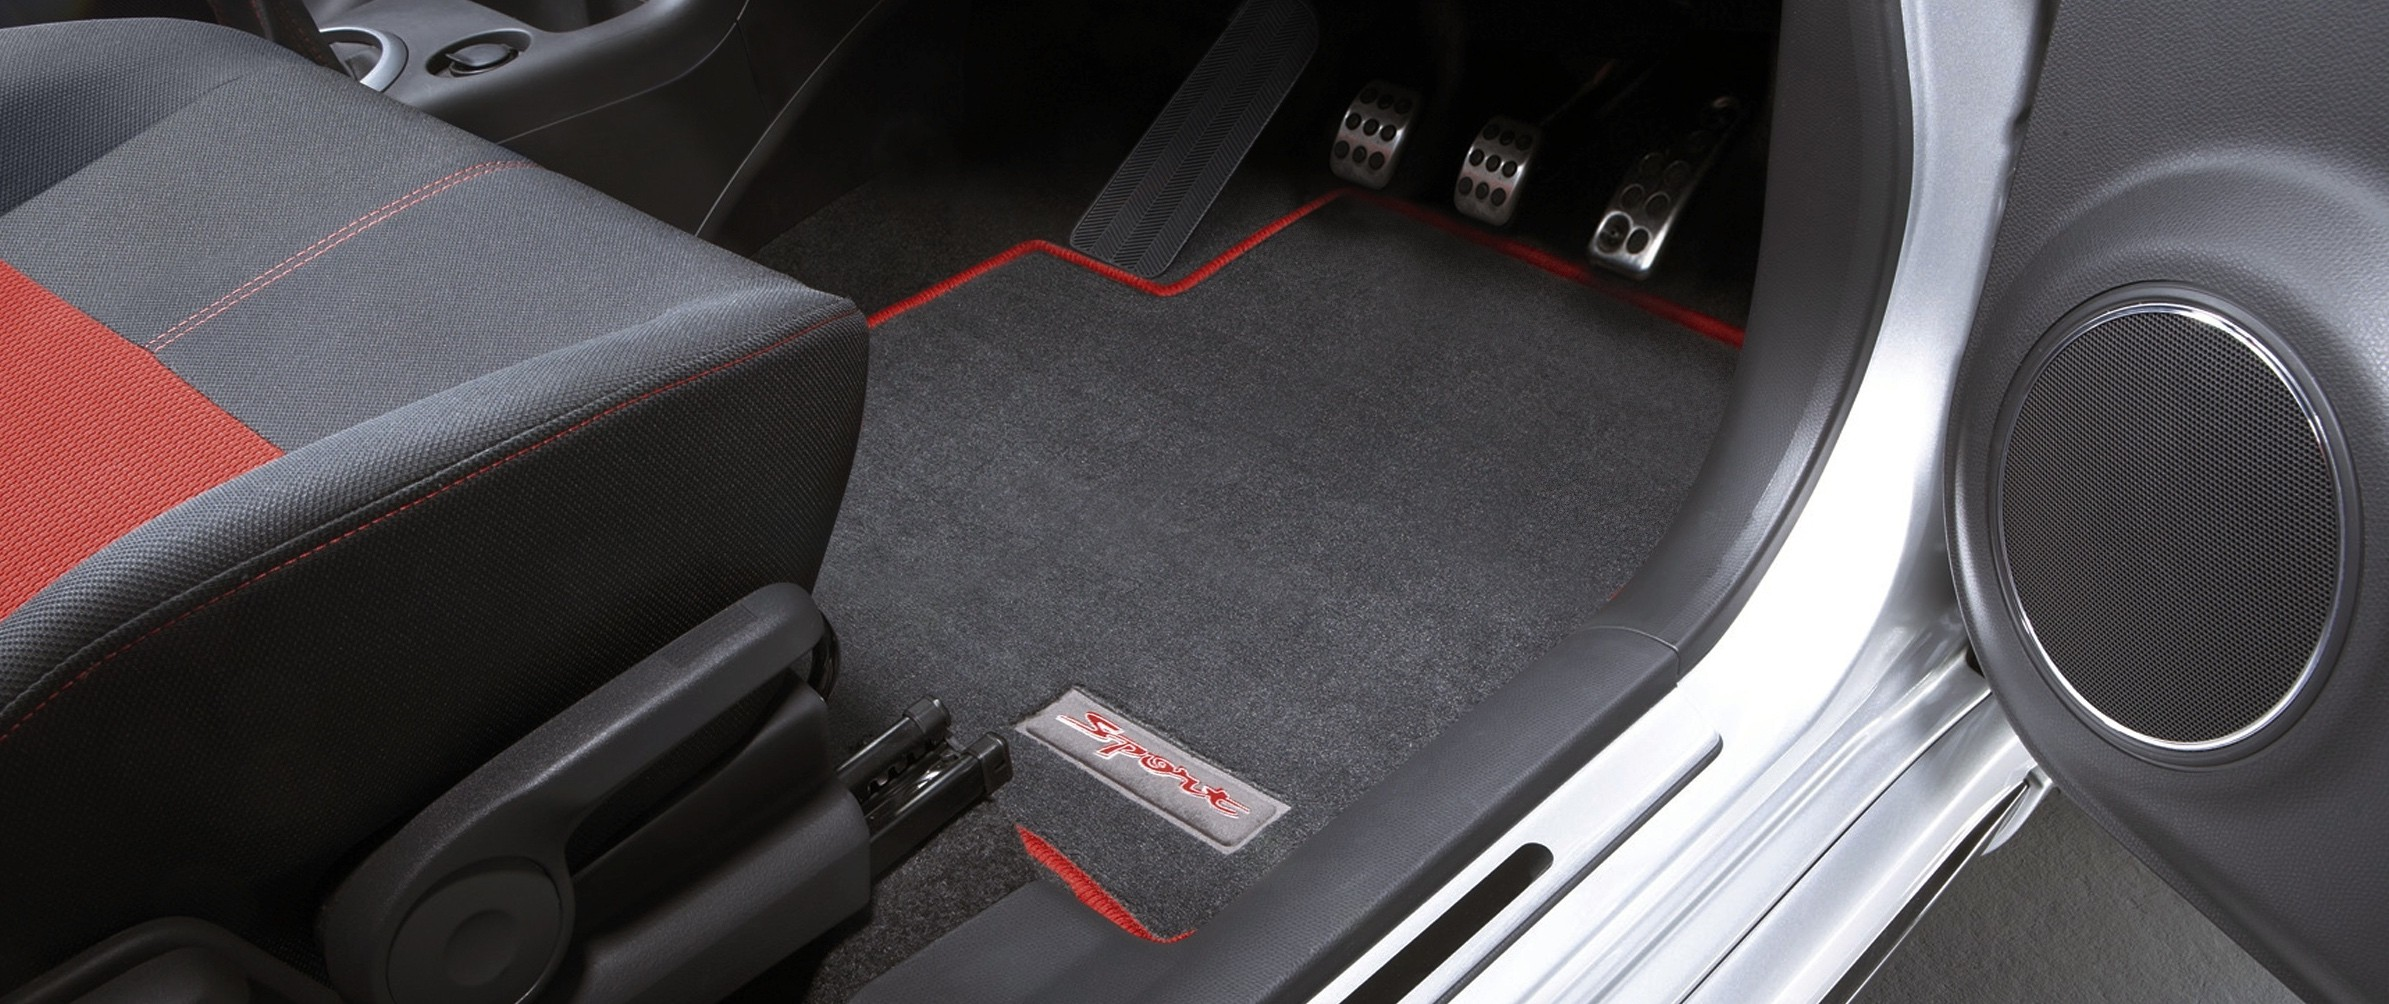 itm flying about logo ebay diamond w spur eco floor stitch auto mats details leather bentley